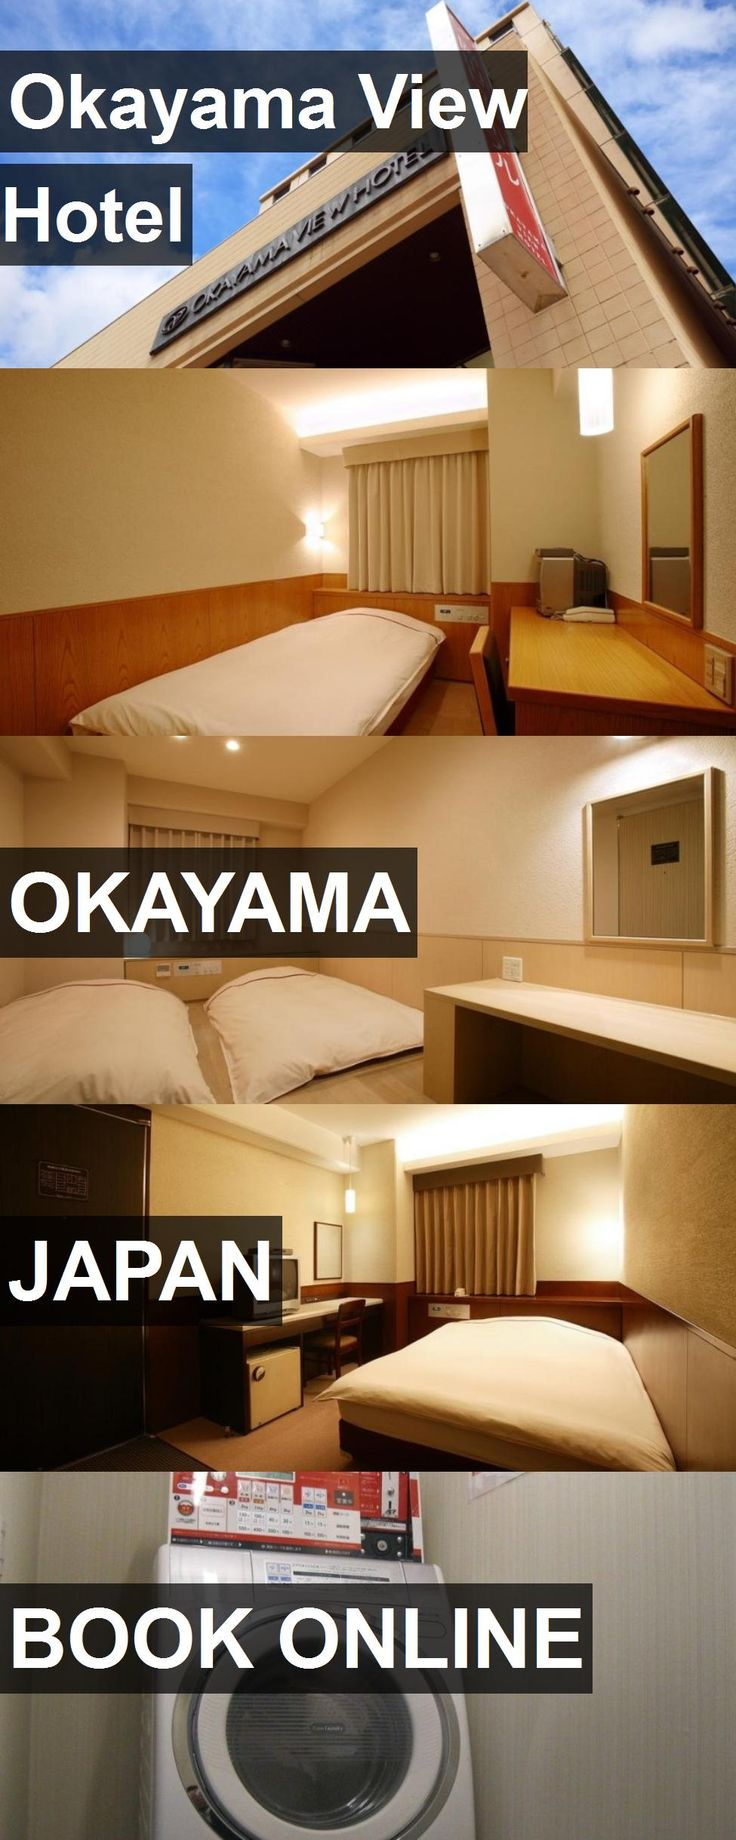 Hotel Okayama View Hotel in Okayama, Japan. For more information, photos, reviews and best prices please follow the link. #Japan #Okayama #OkayamaViewHotel #hotel #travel #vacation